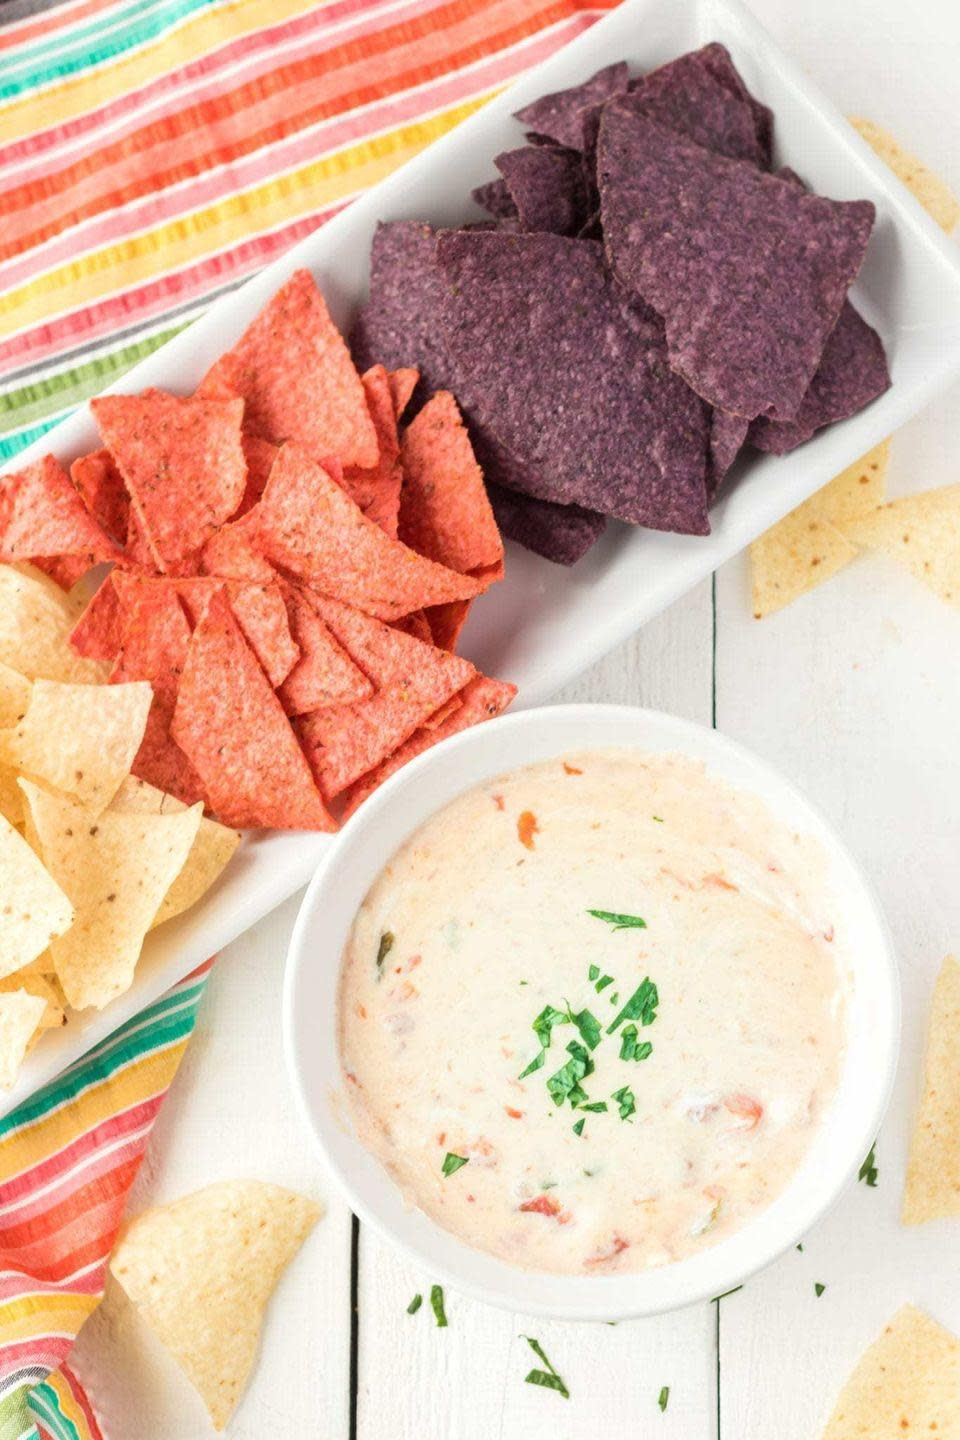 "<p>Queso is delicious no matter what color it is.</p><p>Get the recipe from <a href=""https://www.clarkscondensed.com/food/instant-pot/instant-pot-queso-dip-recipe/"" rel=""nofollow noopener"" target=""_blank"" data-ylk=""slk:Clarks Condensed Living"" class=""link rapid-noclick-resp"">Clarks Condensed Living</a>.</p>"